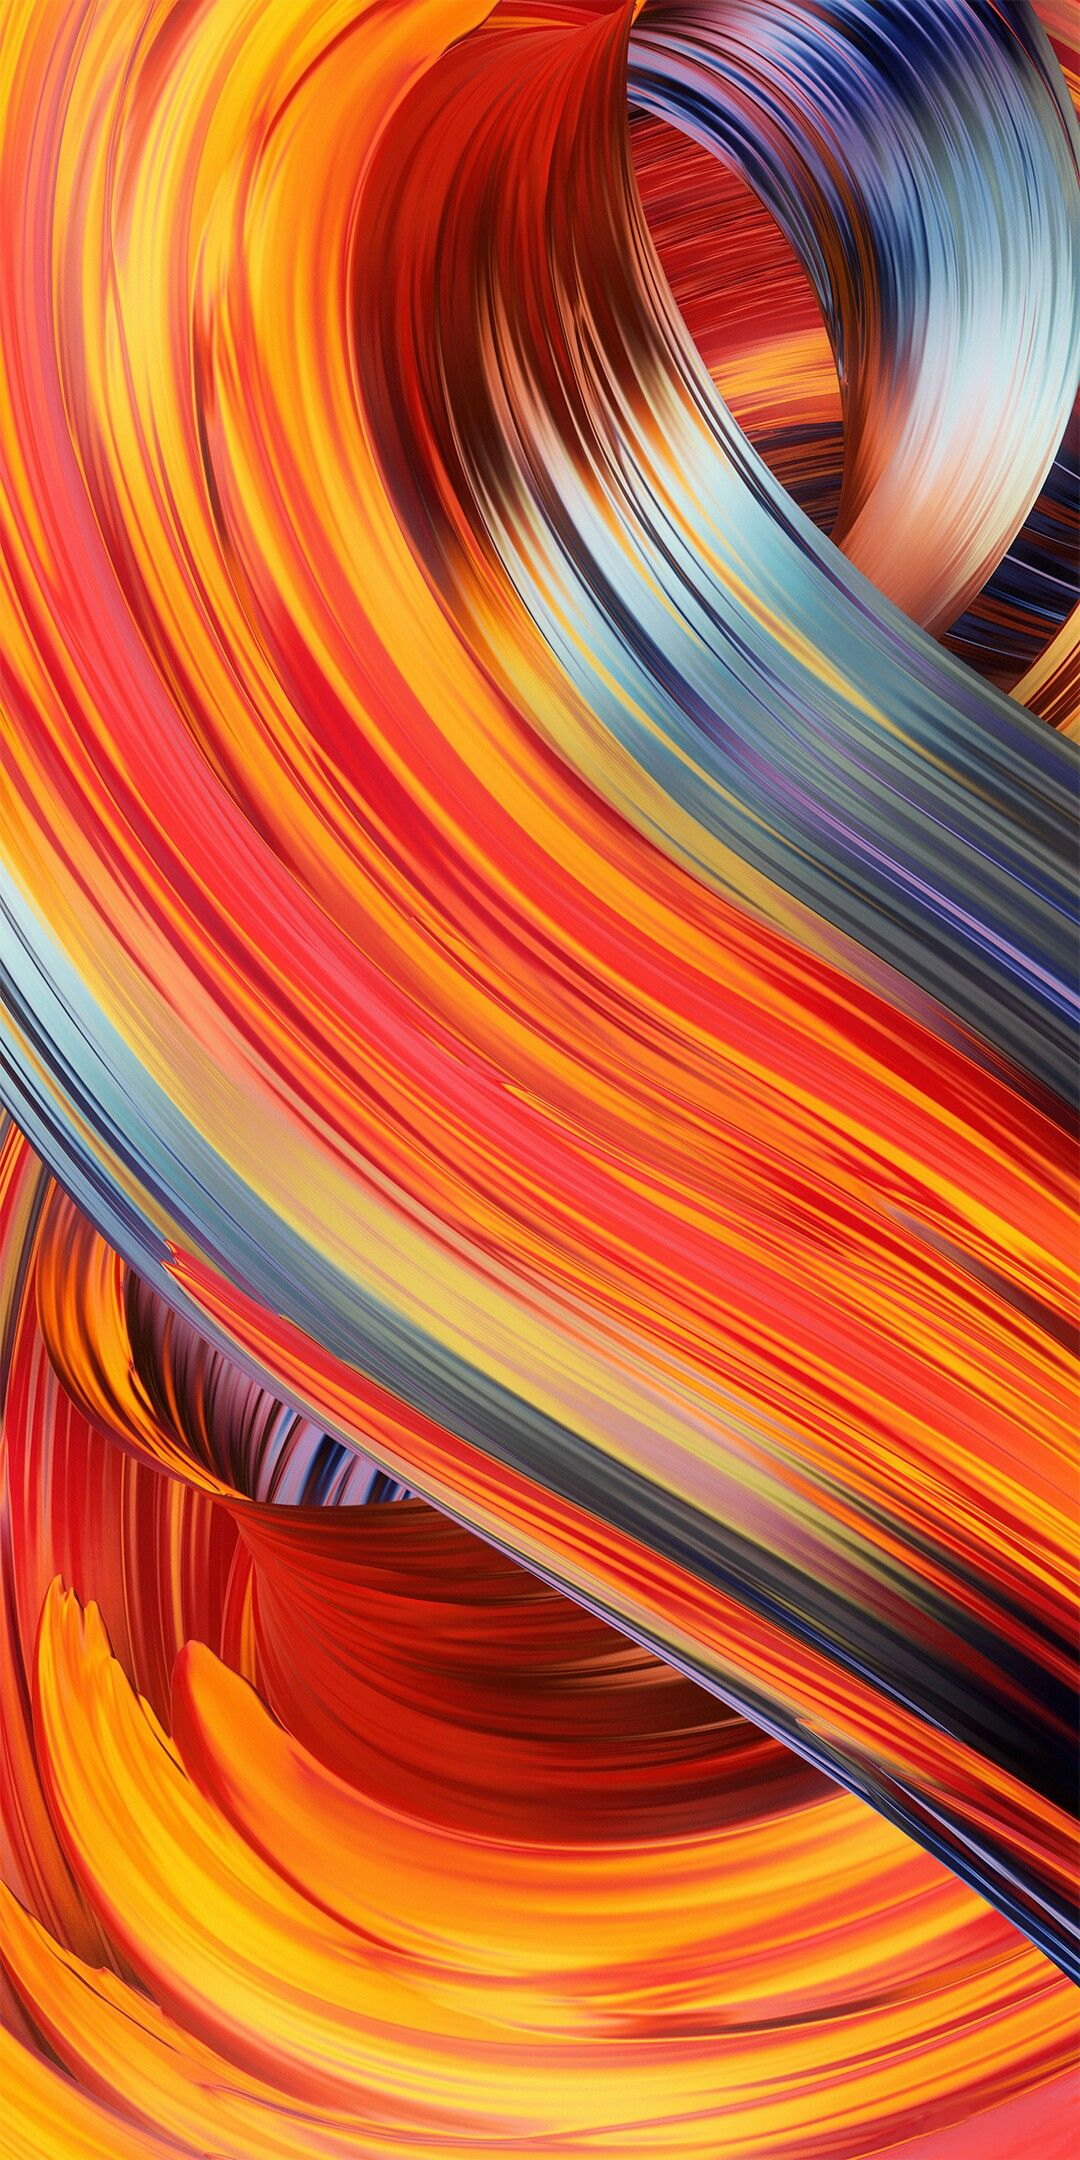 Xiaomi Mi Mix 2 In 2019 Xiaomi Wallpapers Abstract Iphone